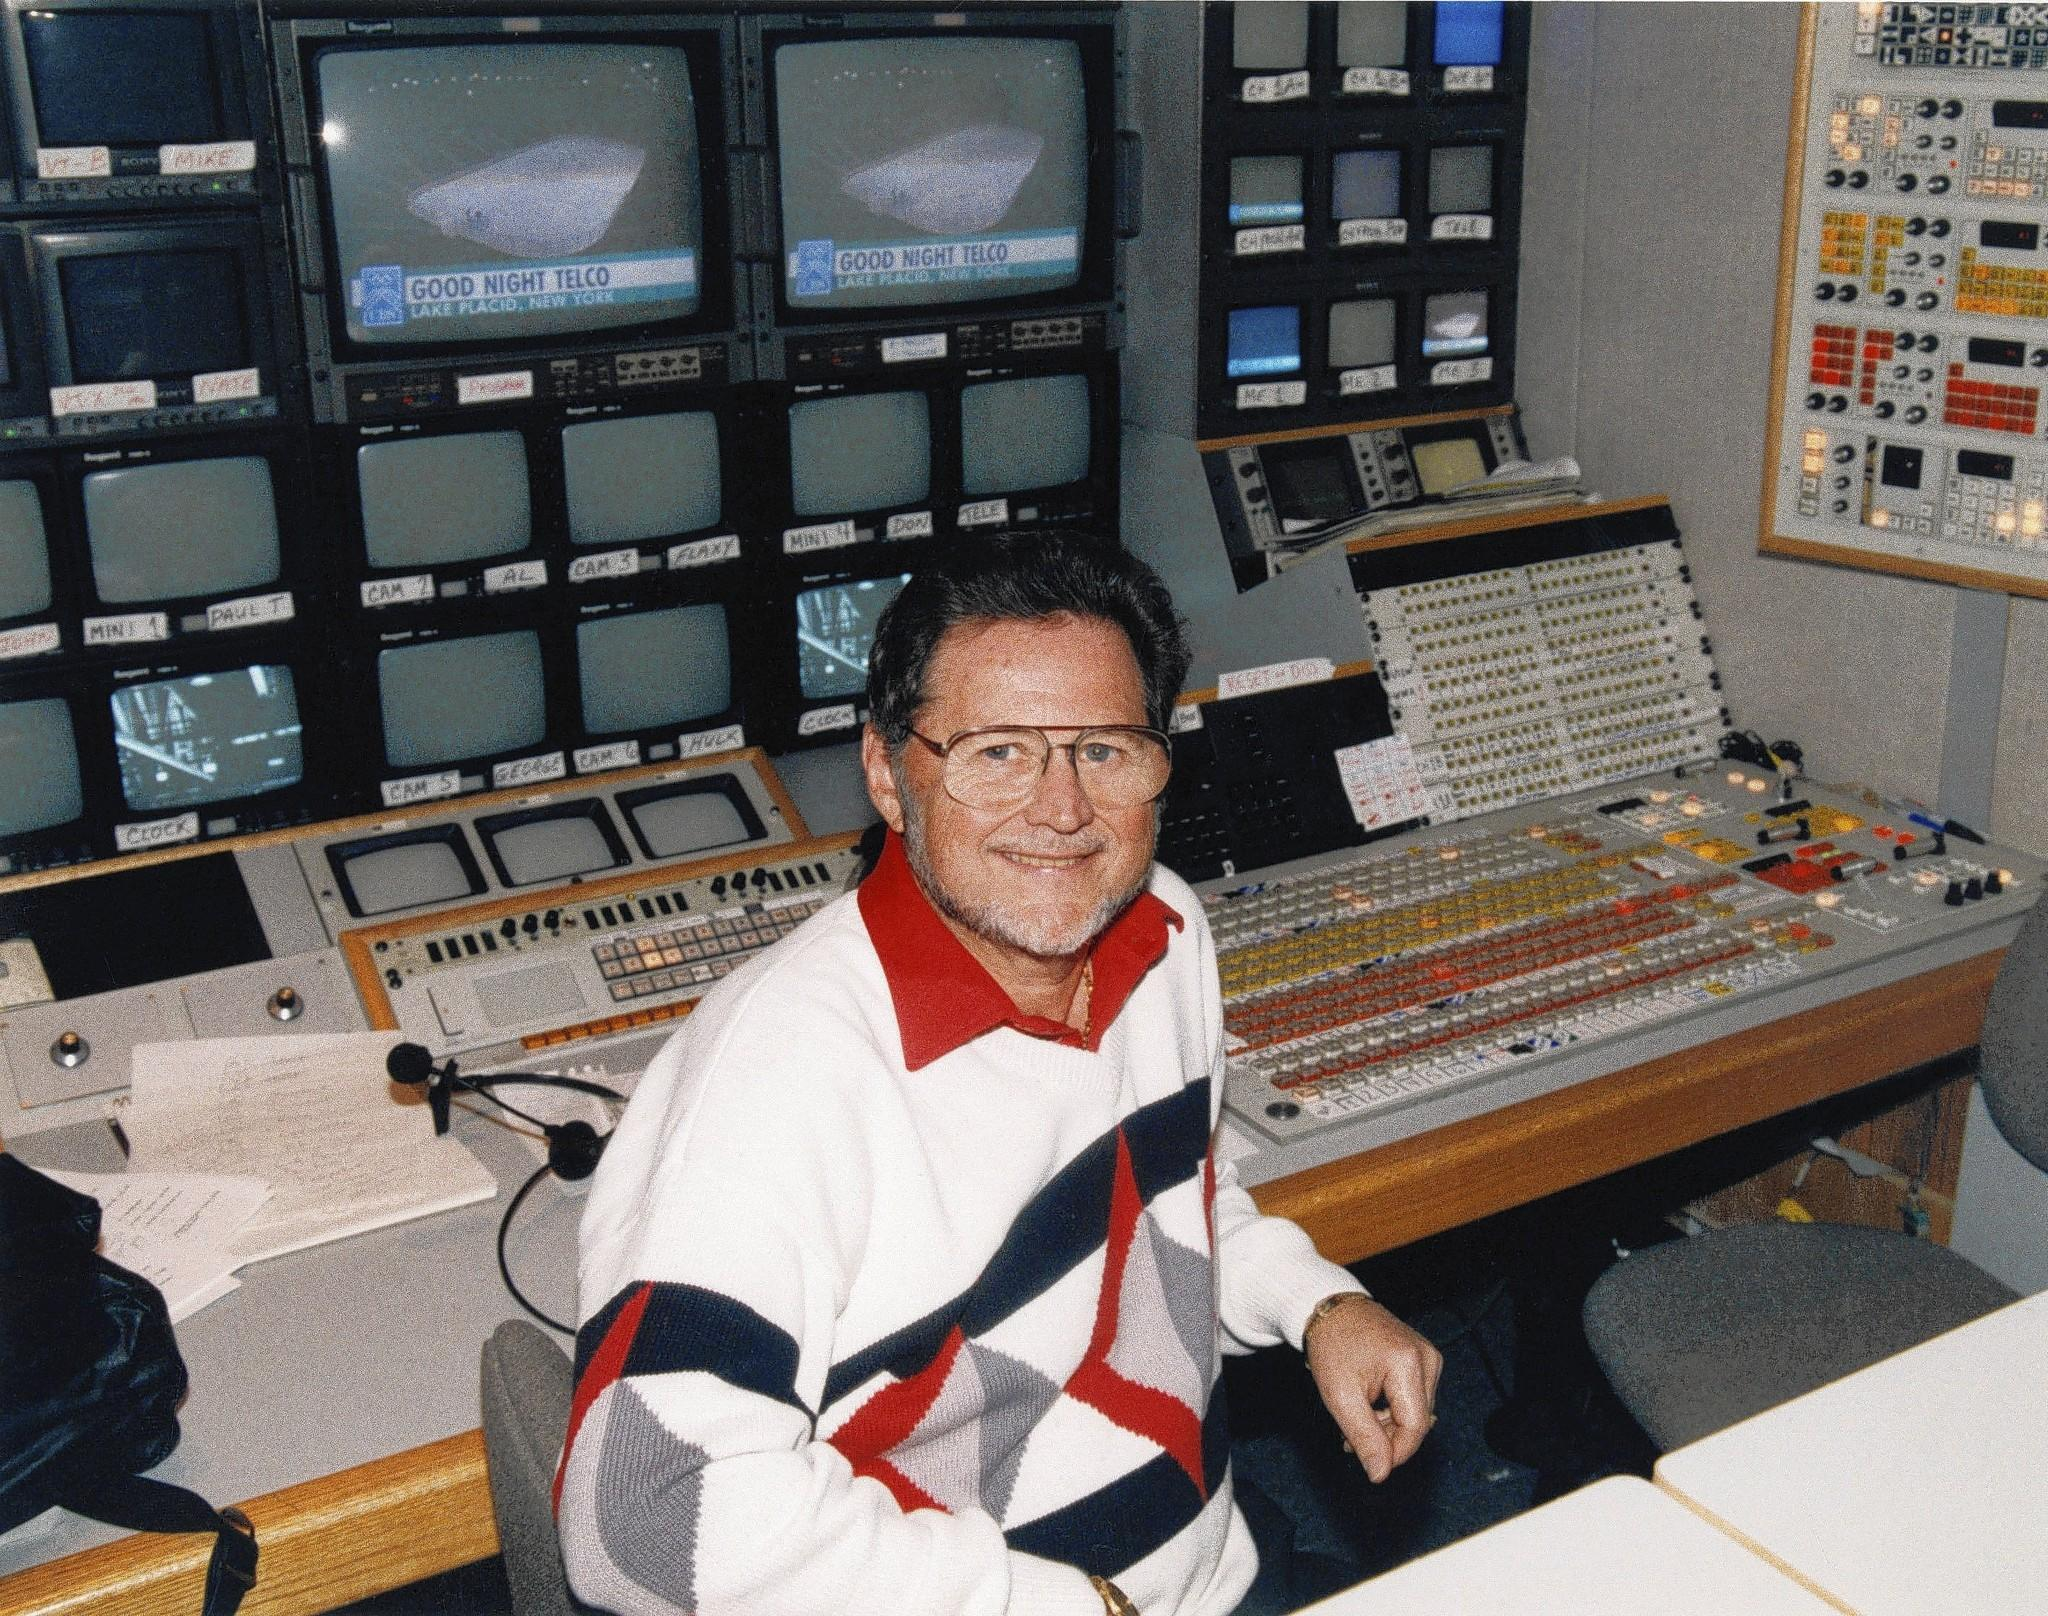 Television sports director Sandy Grossman in 1993. He directed a record 10 Super Bowl broadcasts and spent more than two decades working with announcers Pat Summerall and John Madden. He died at his home in Boca Raton, Fla., at the age of 78.